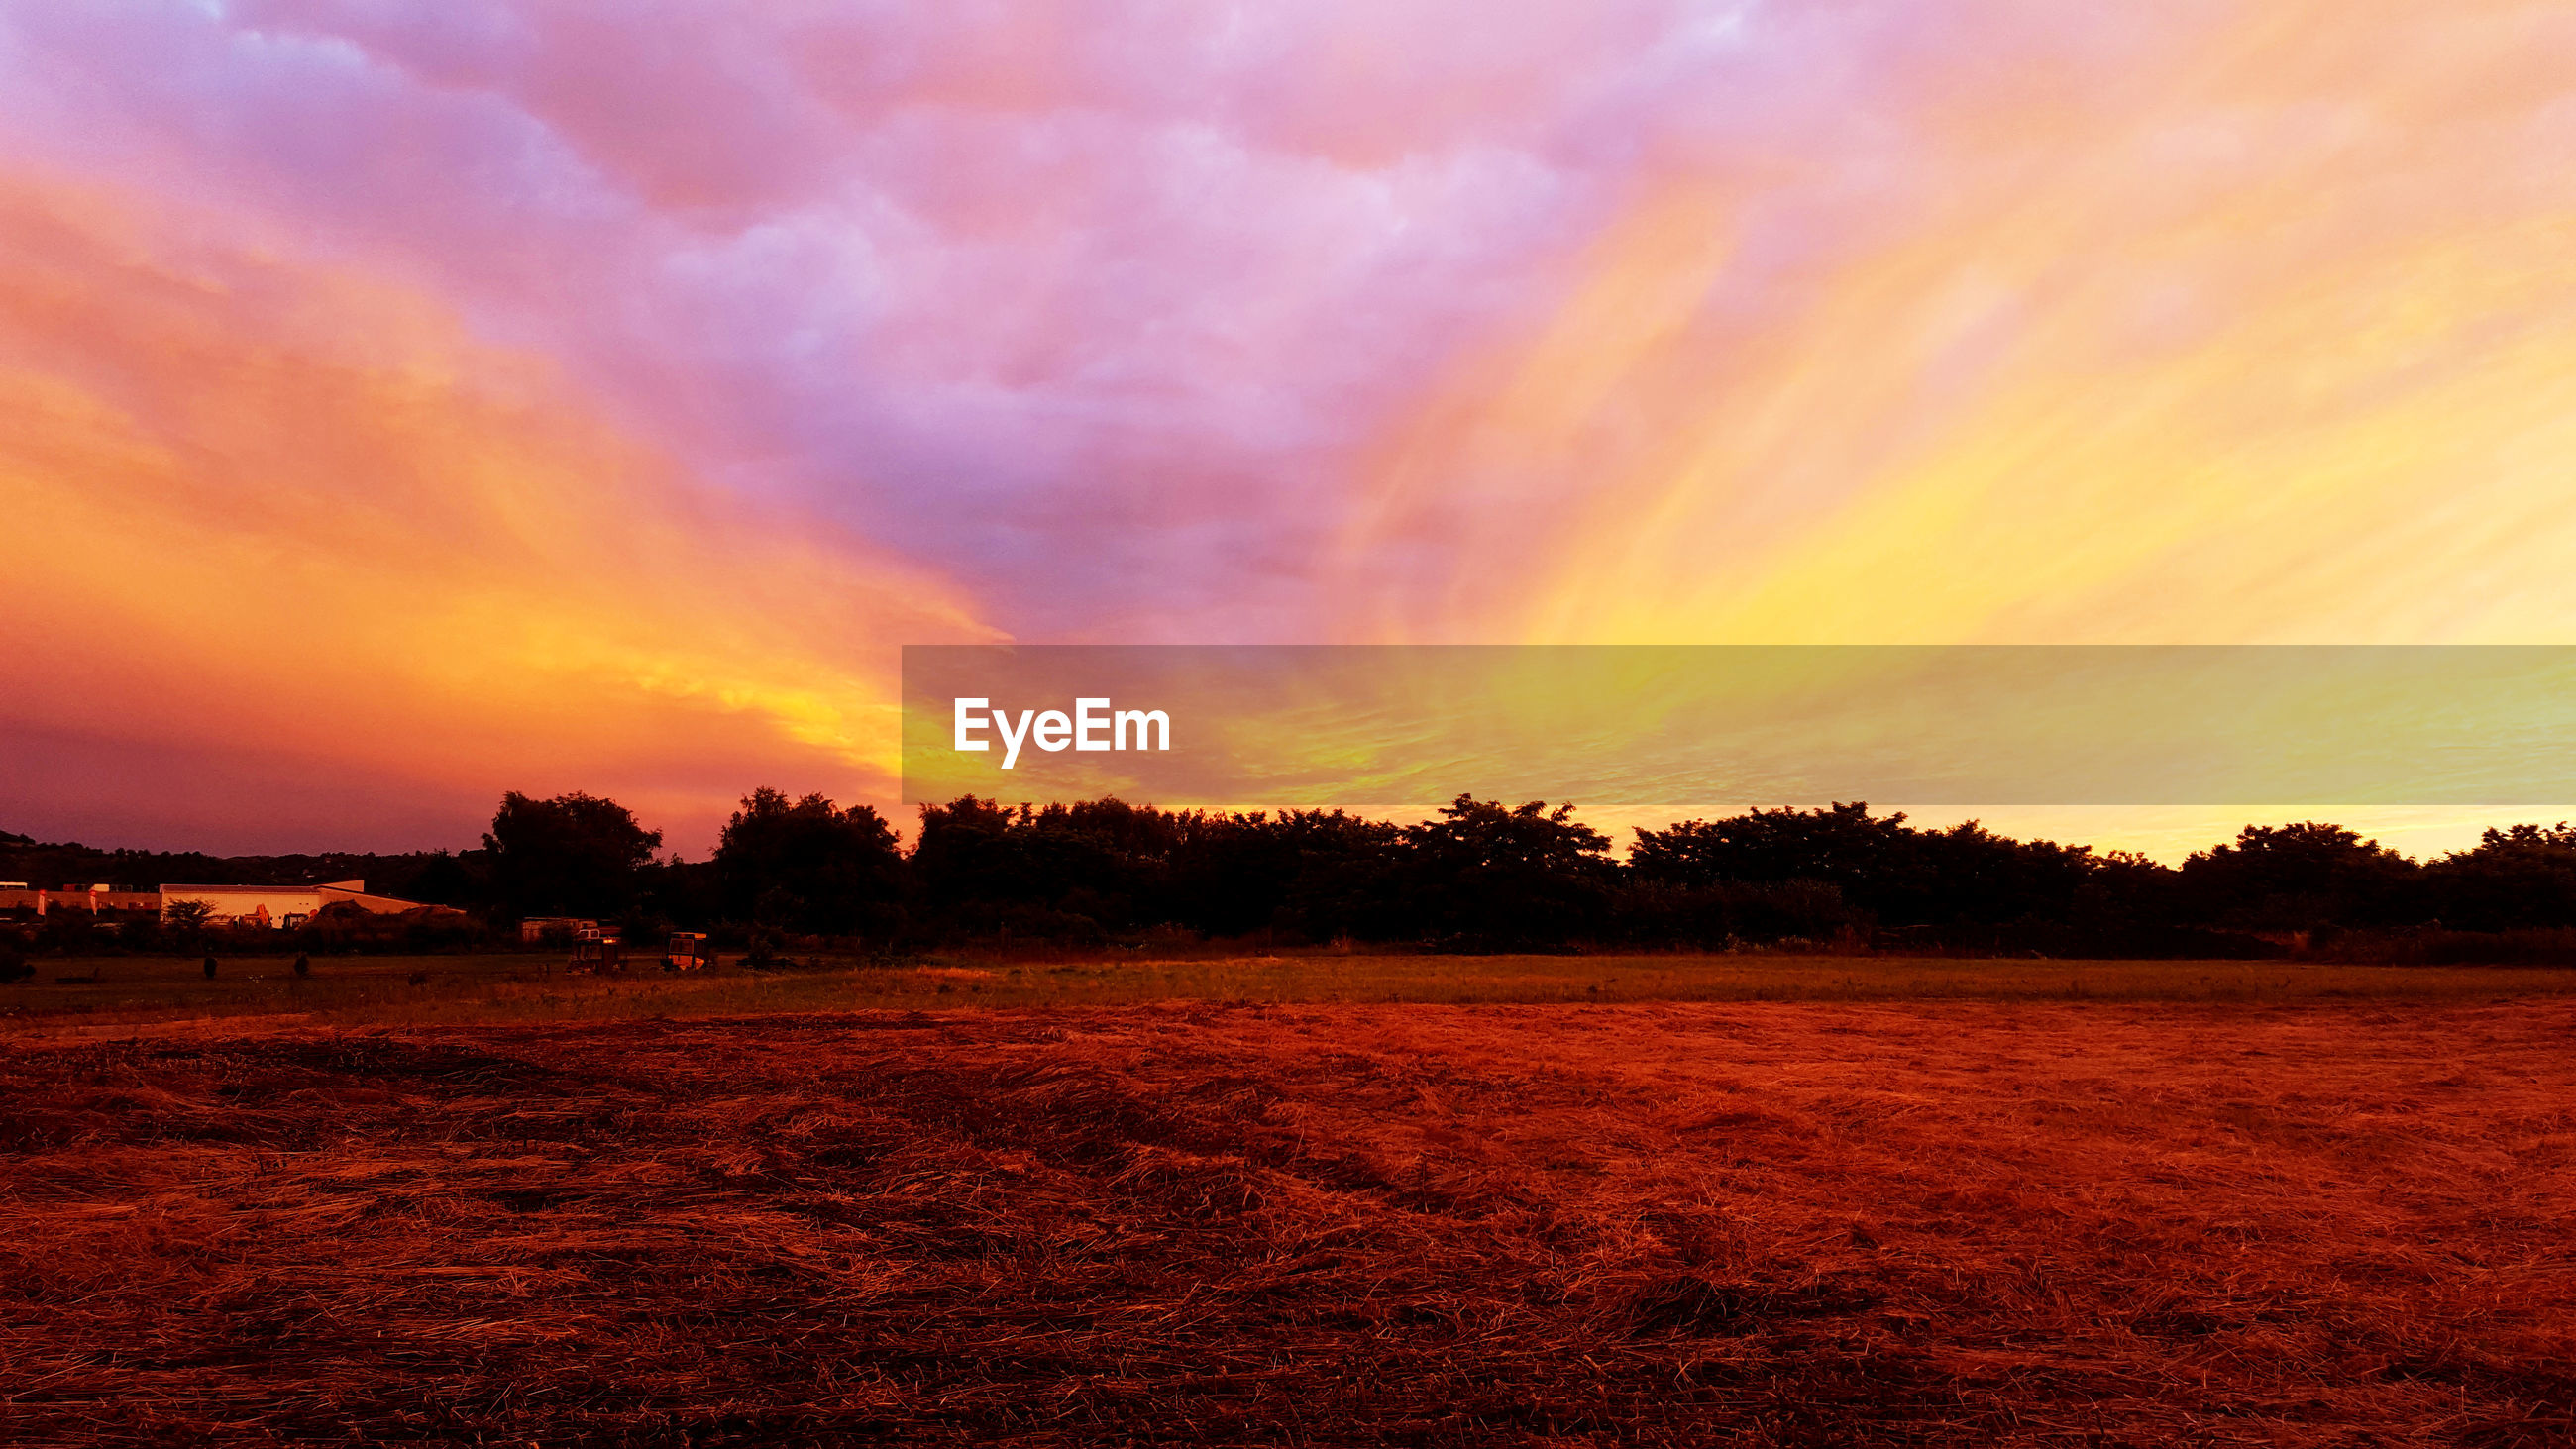 sunset, tranquility, beauty in nature, tranquil scene, sky, scenics, nature, orange color, tree, no people, landscape, field, cloud - sky, silhouette, agriculture, outdoors, rural scene, day